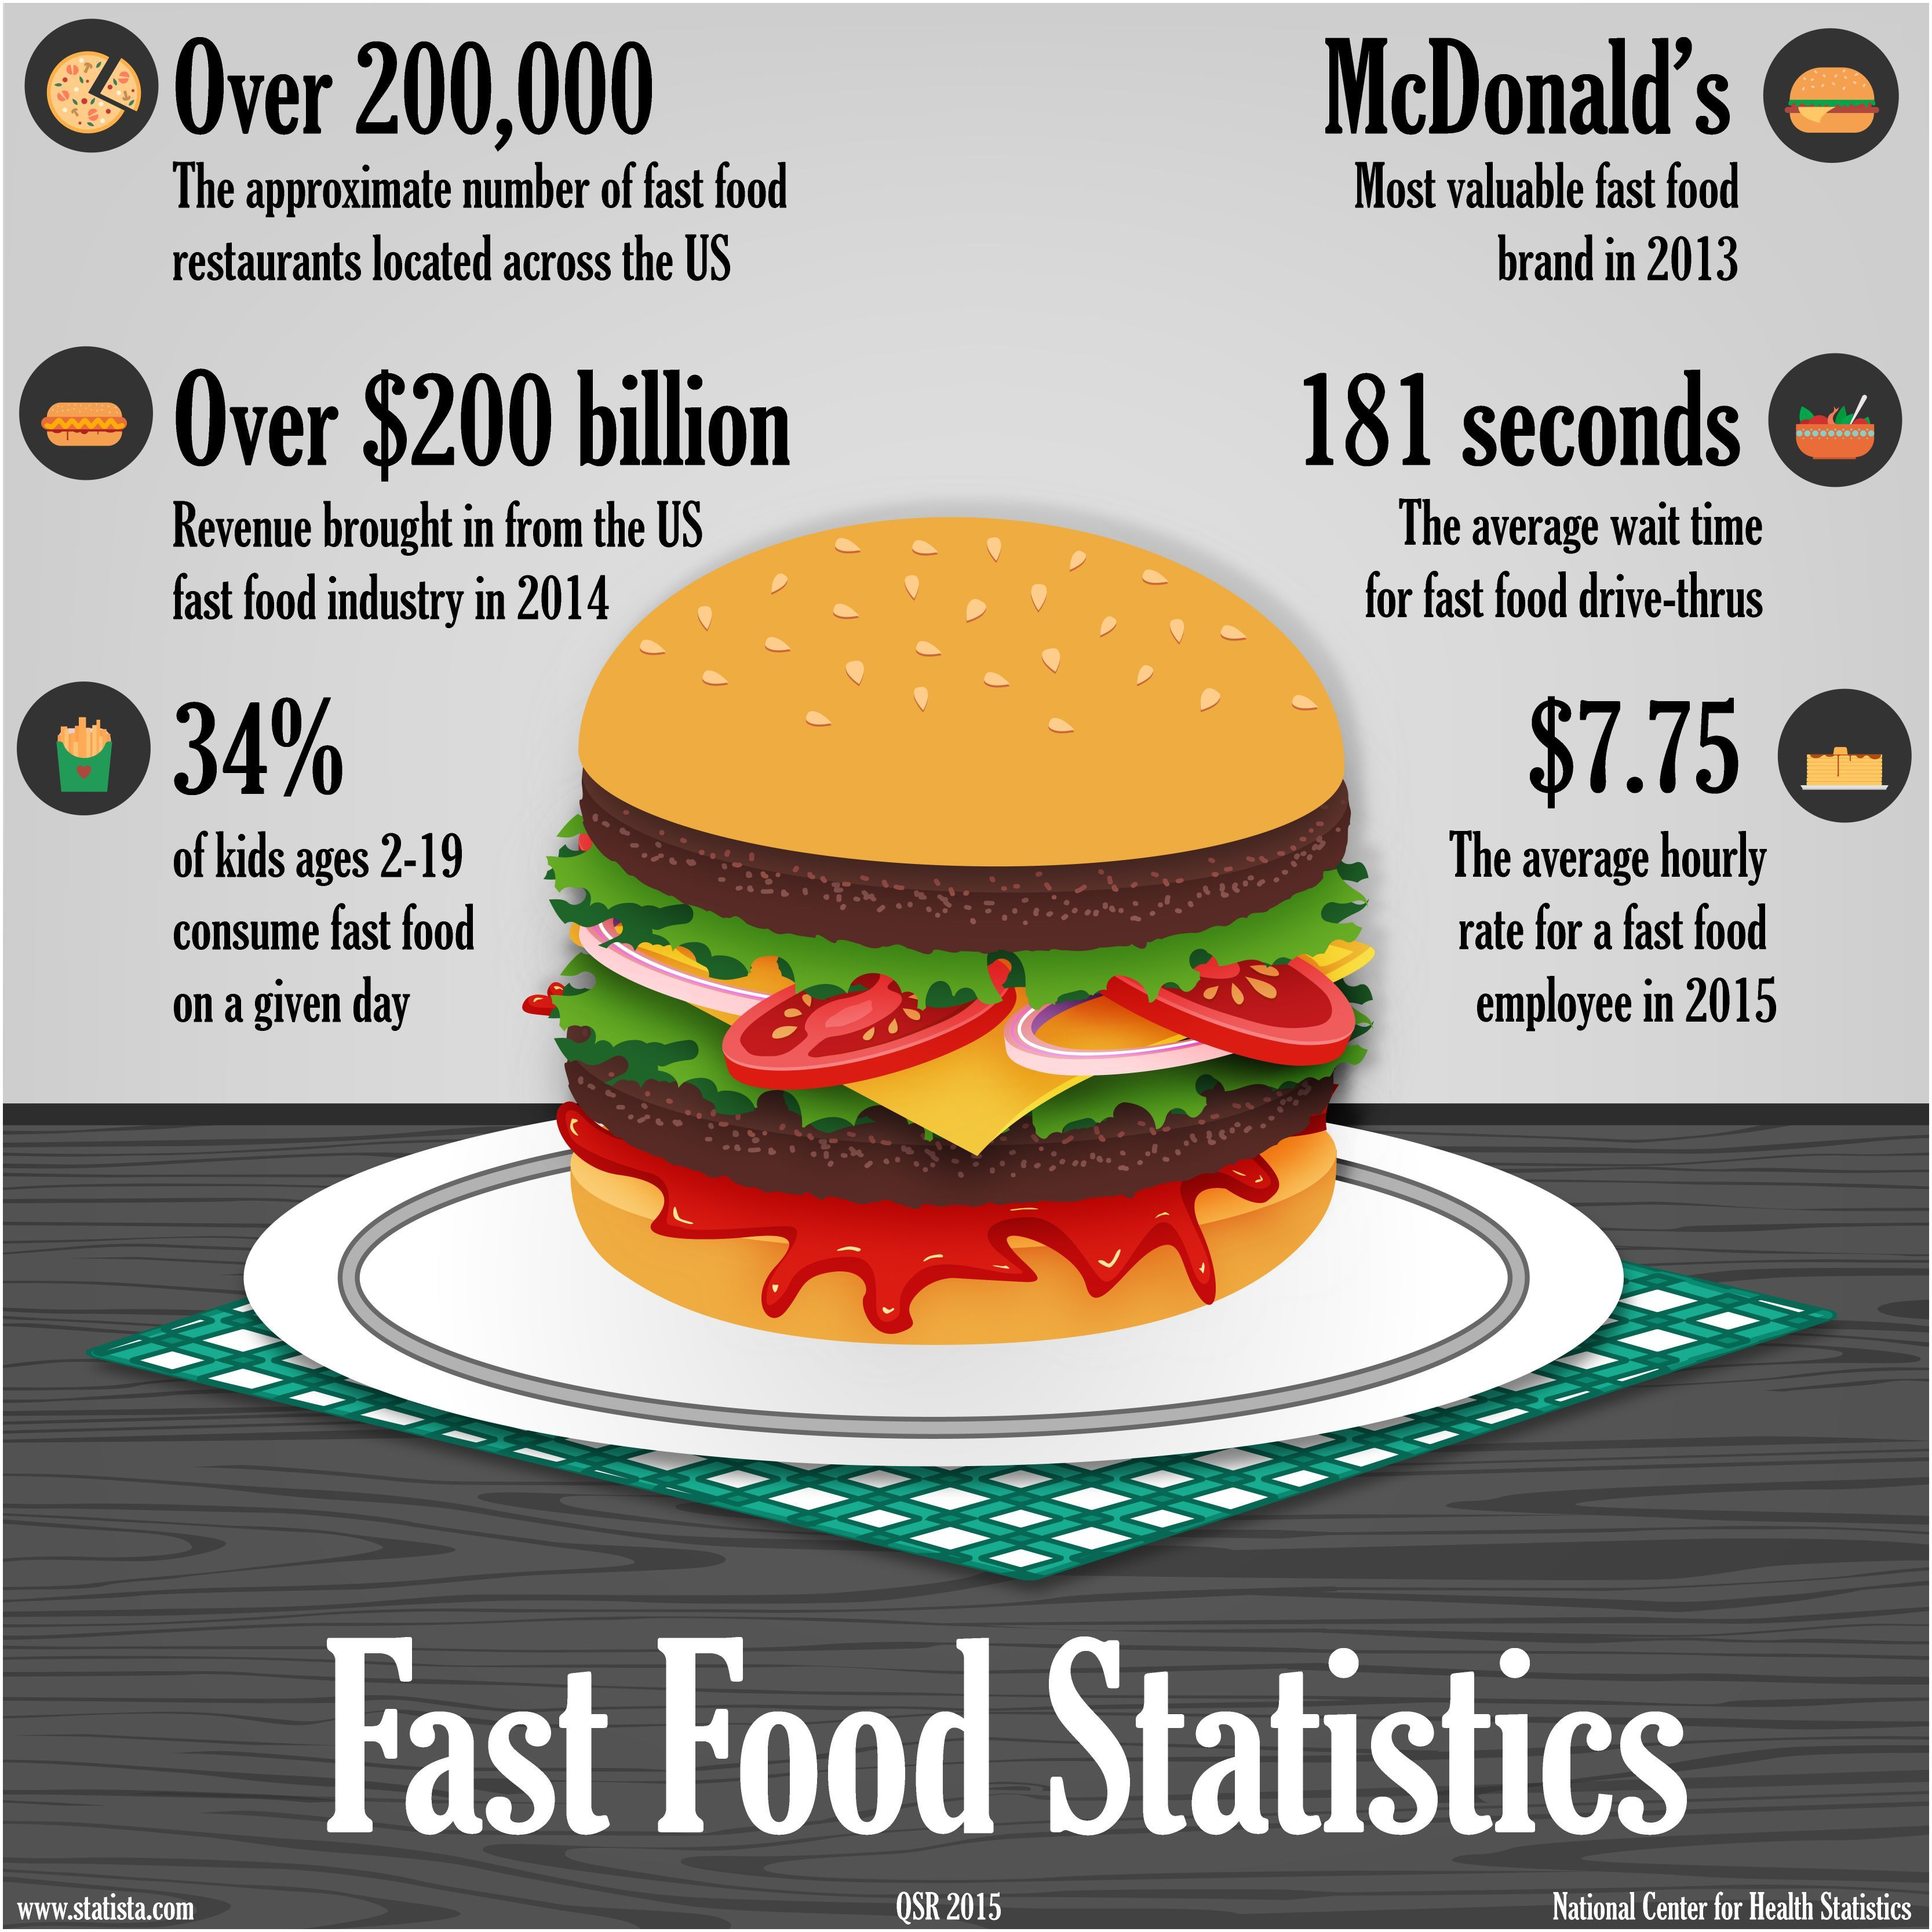 Fast Food Stats from RMagazine